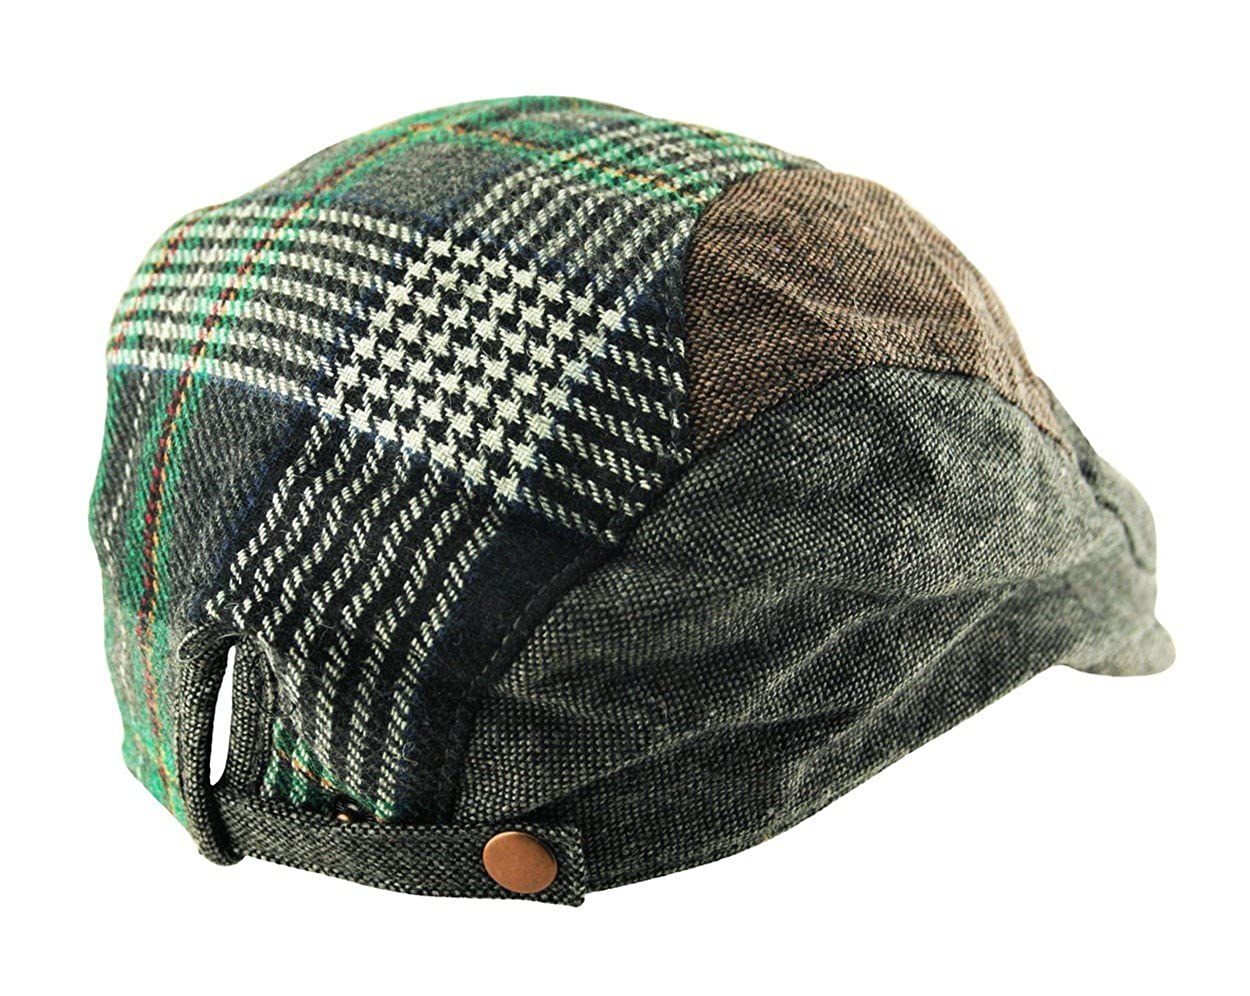 7f126afadd41e Mens Cotton Check Tweed Houndstooth Flat Cap Golf Baker Boy in Grey and  Green  Amazon.co.uk  Clothing